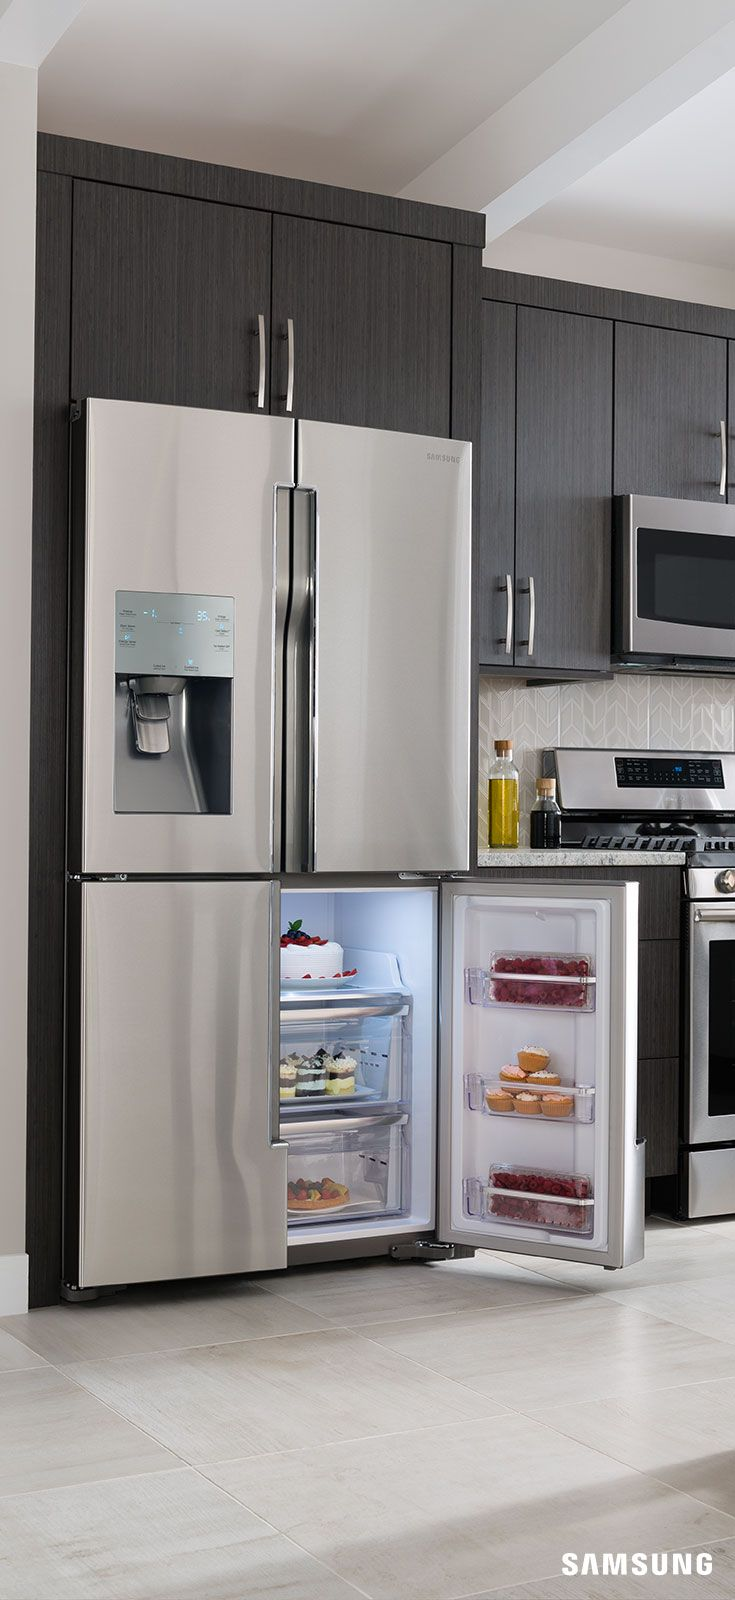 Kitchen Design Refrigerator best 25+ cabinet depth refrigerator ideas on pinterest | built in